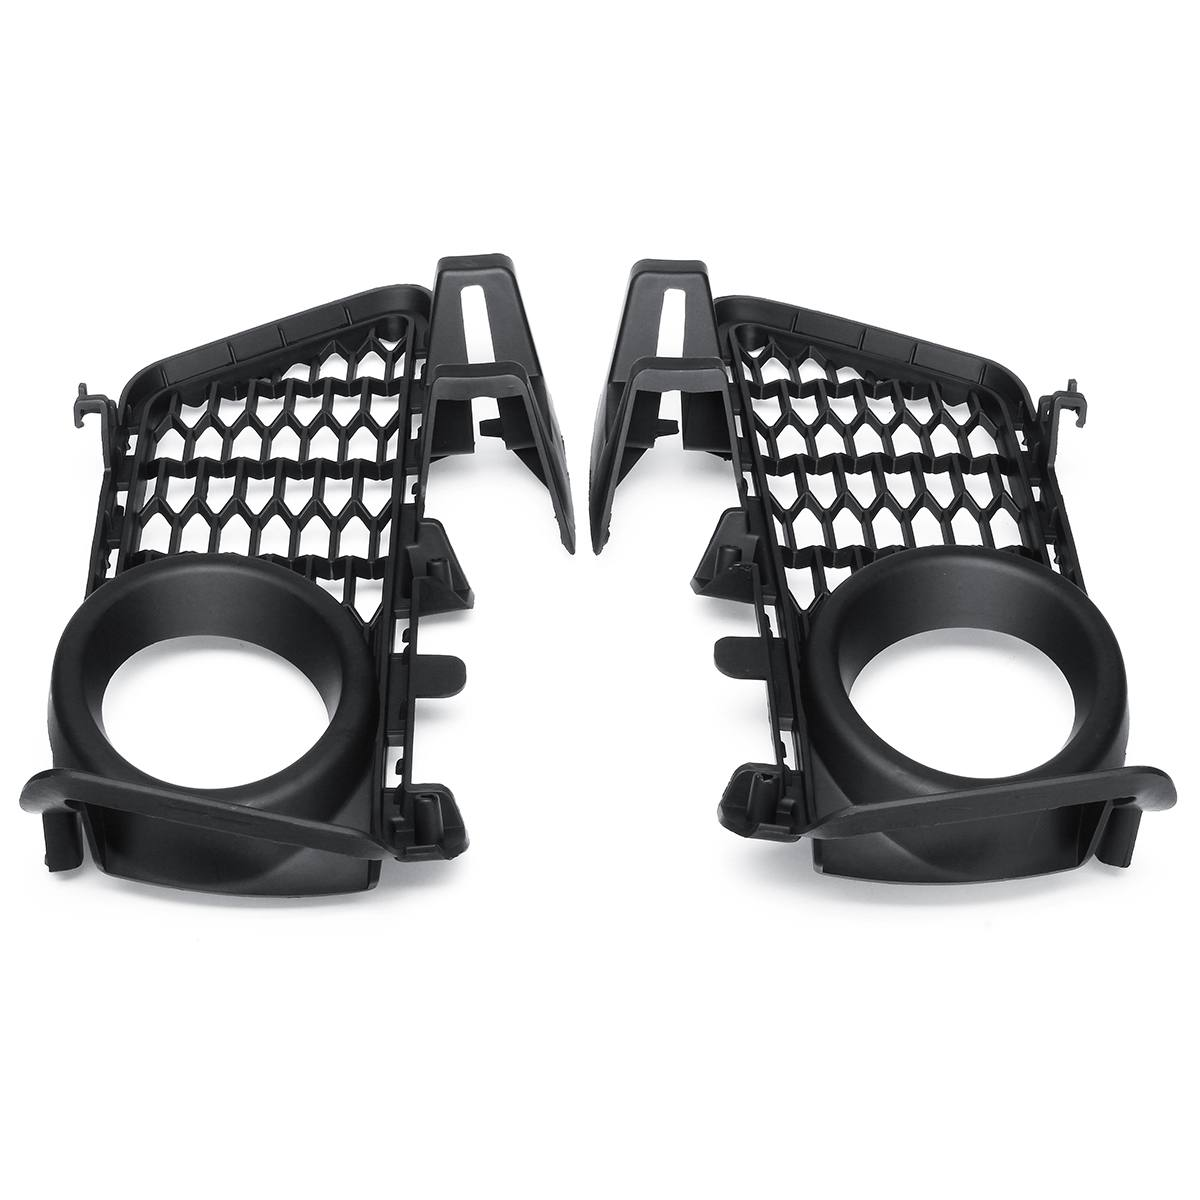 8054155 8054156 Pair Black Front Bumper Fog Light Grid Grilles For BMW 3 Series F30 F31 2011 2012 2013 2014 2015 противотуманки bmw e60